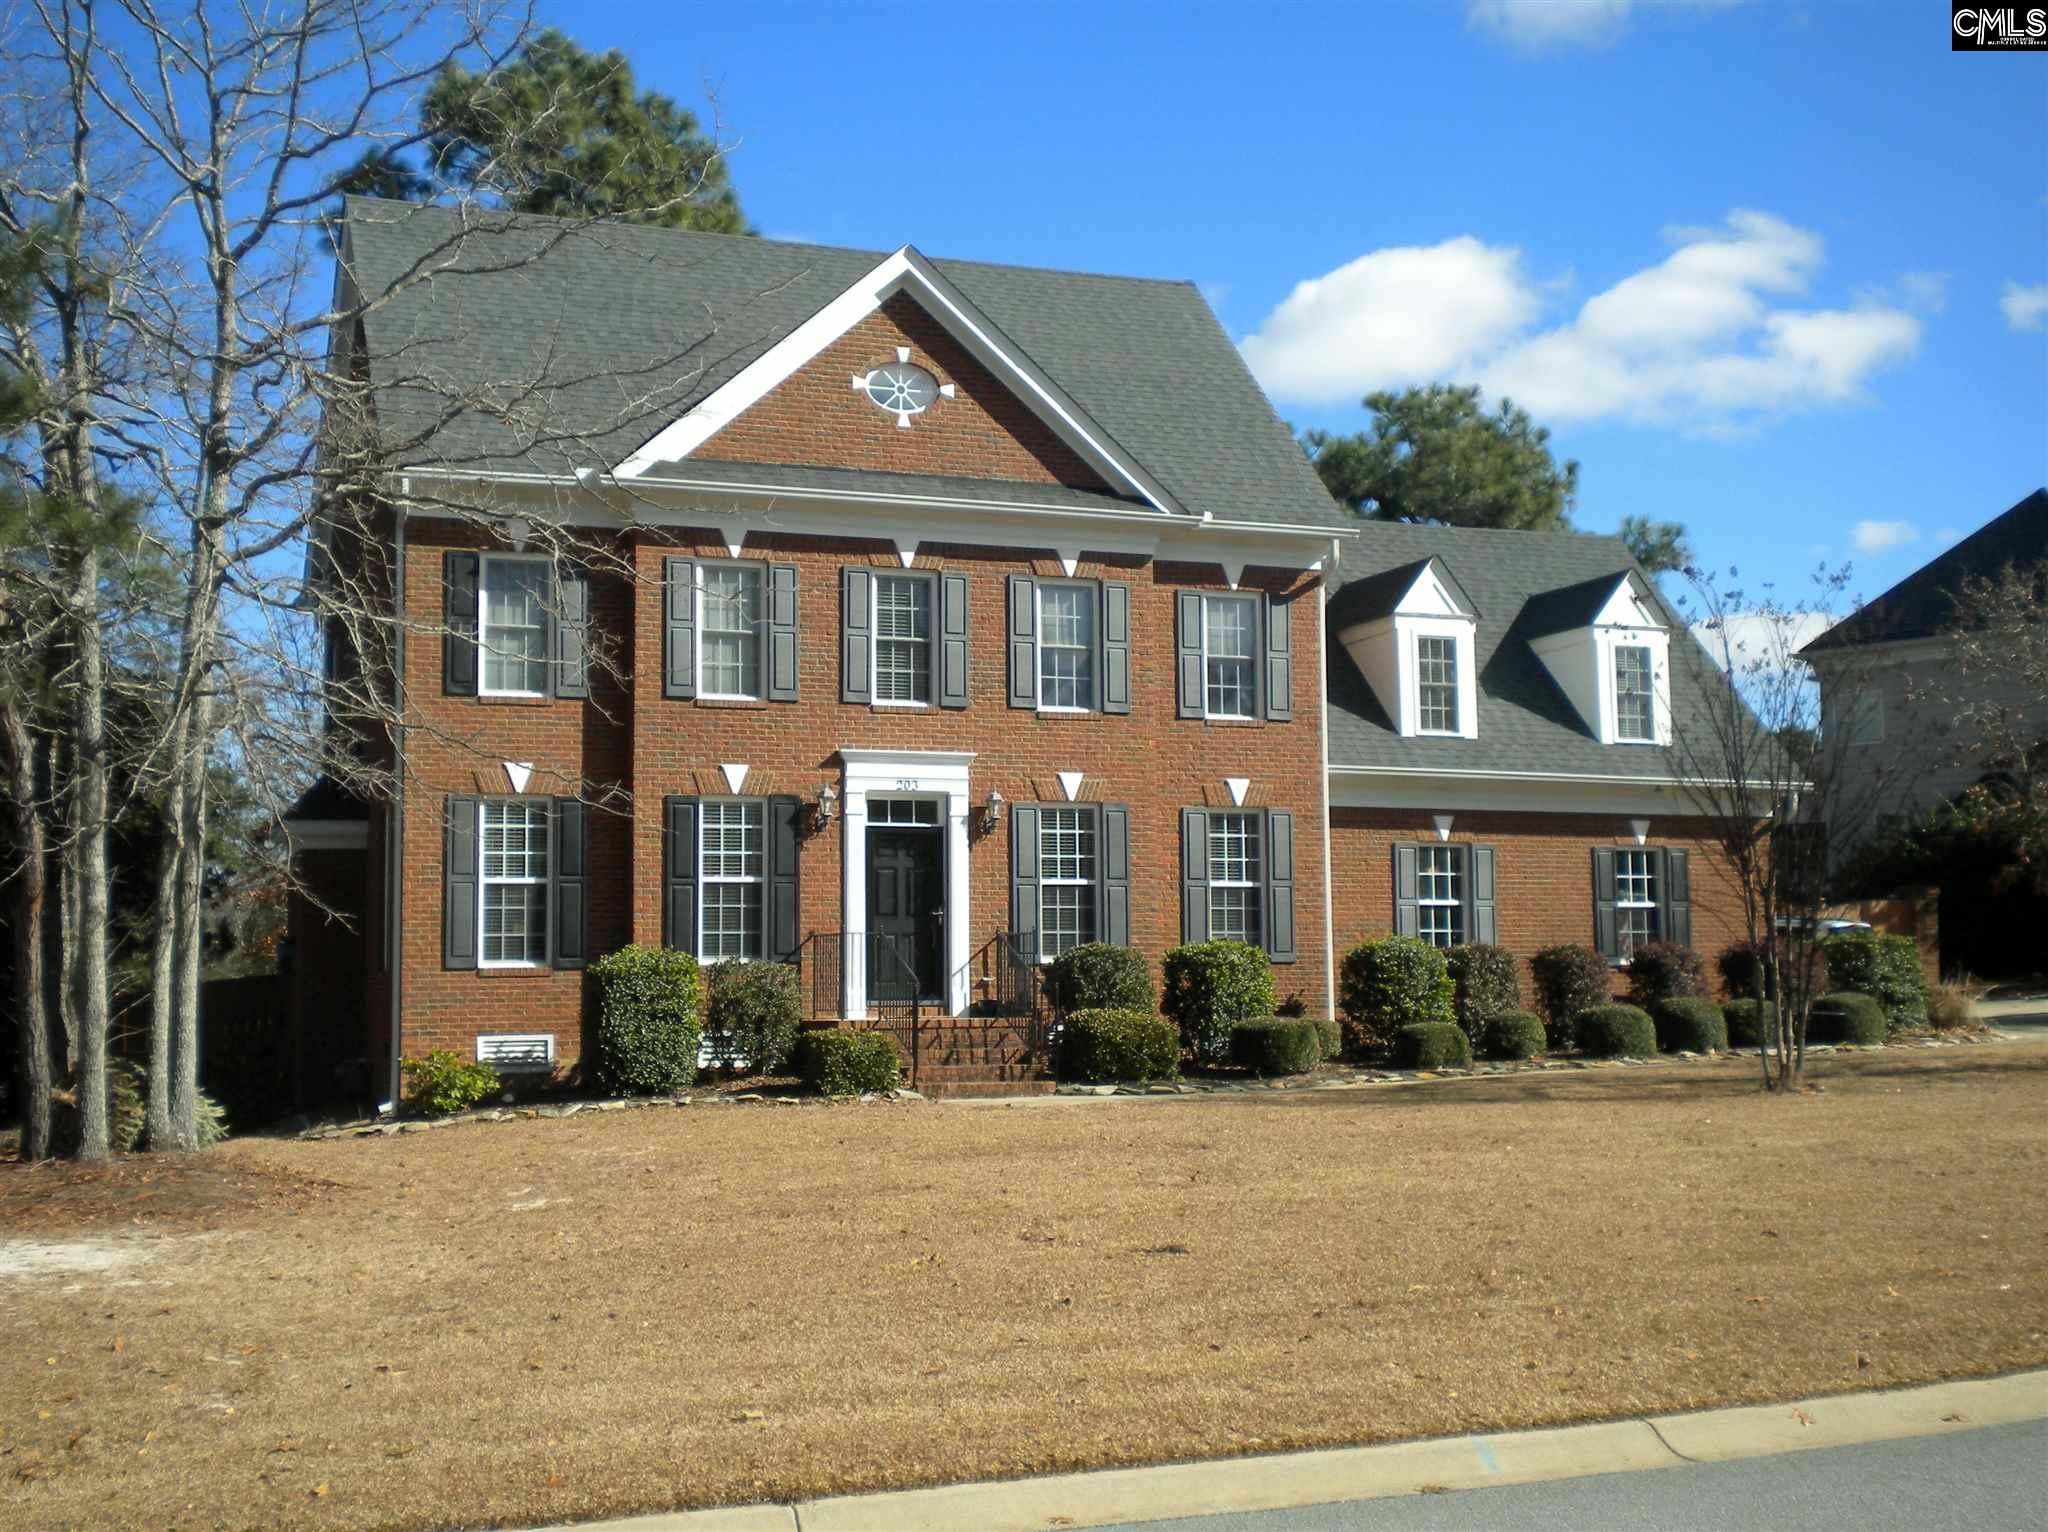 203 S Crescent Lake Blythewood, SC 29016